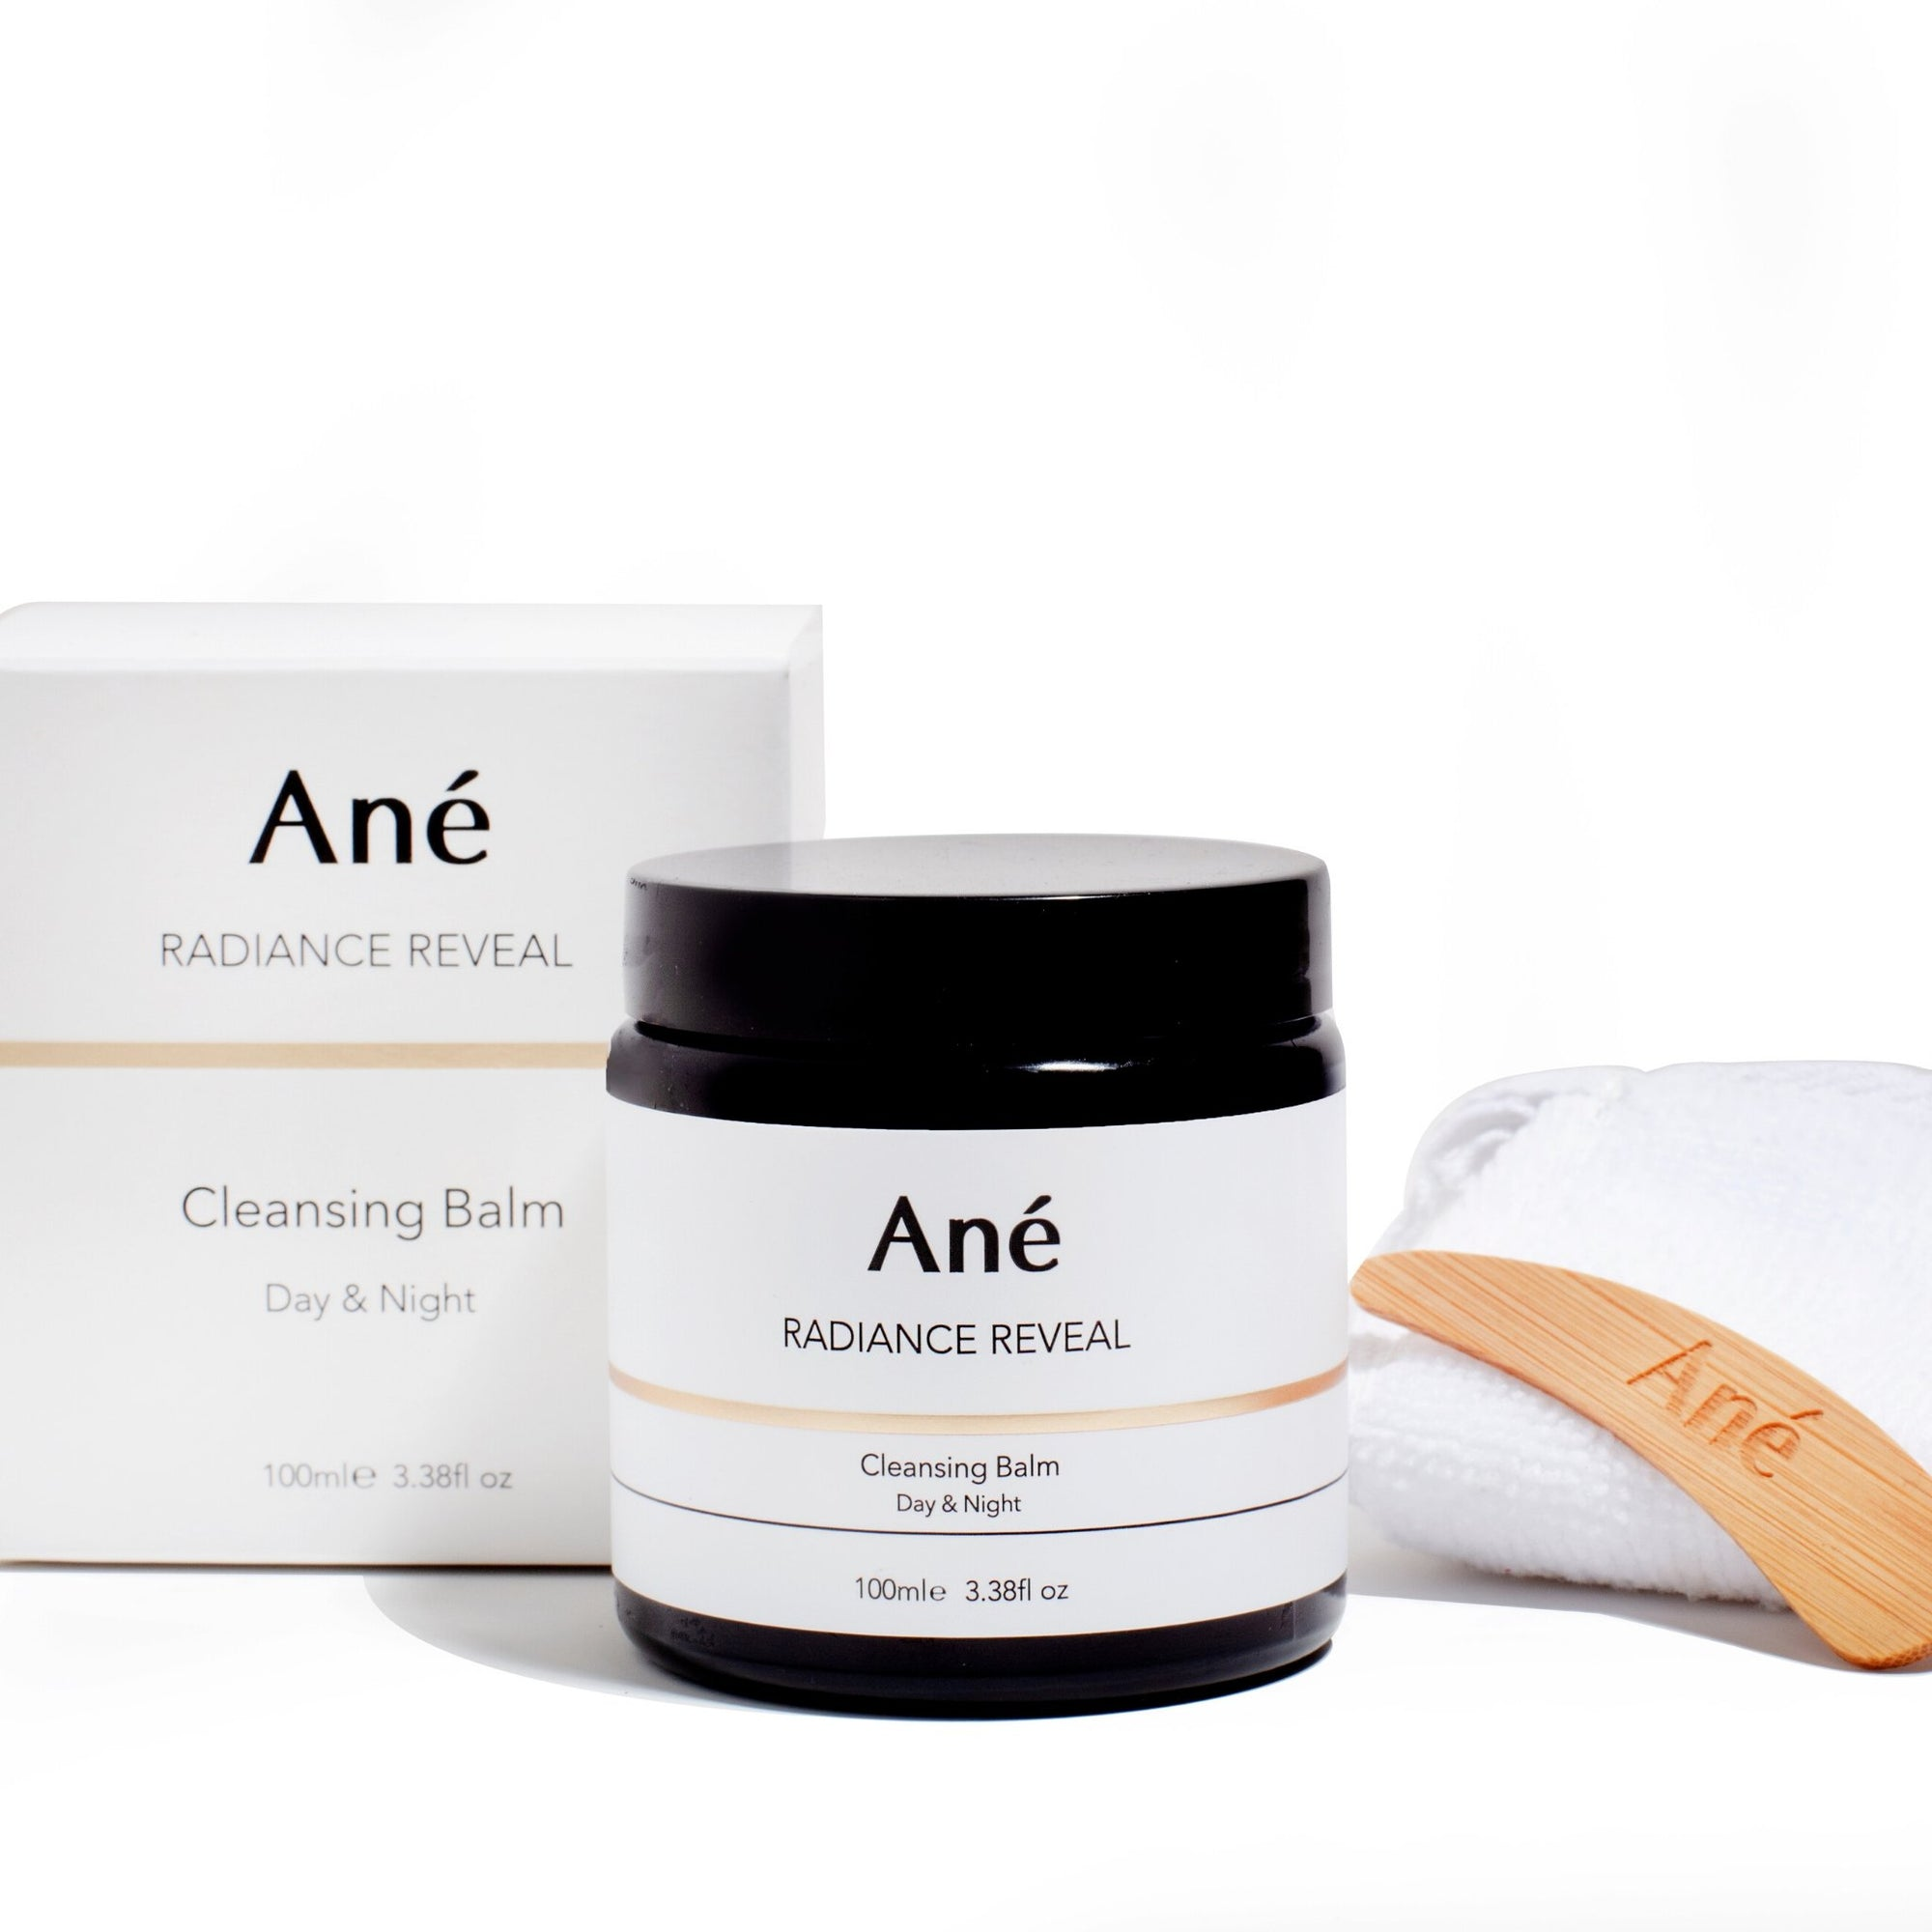 SOLD OUT - Radiance Reveal Cleansing Balm